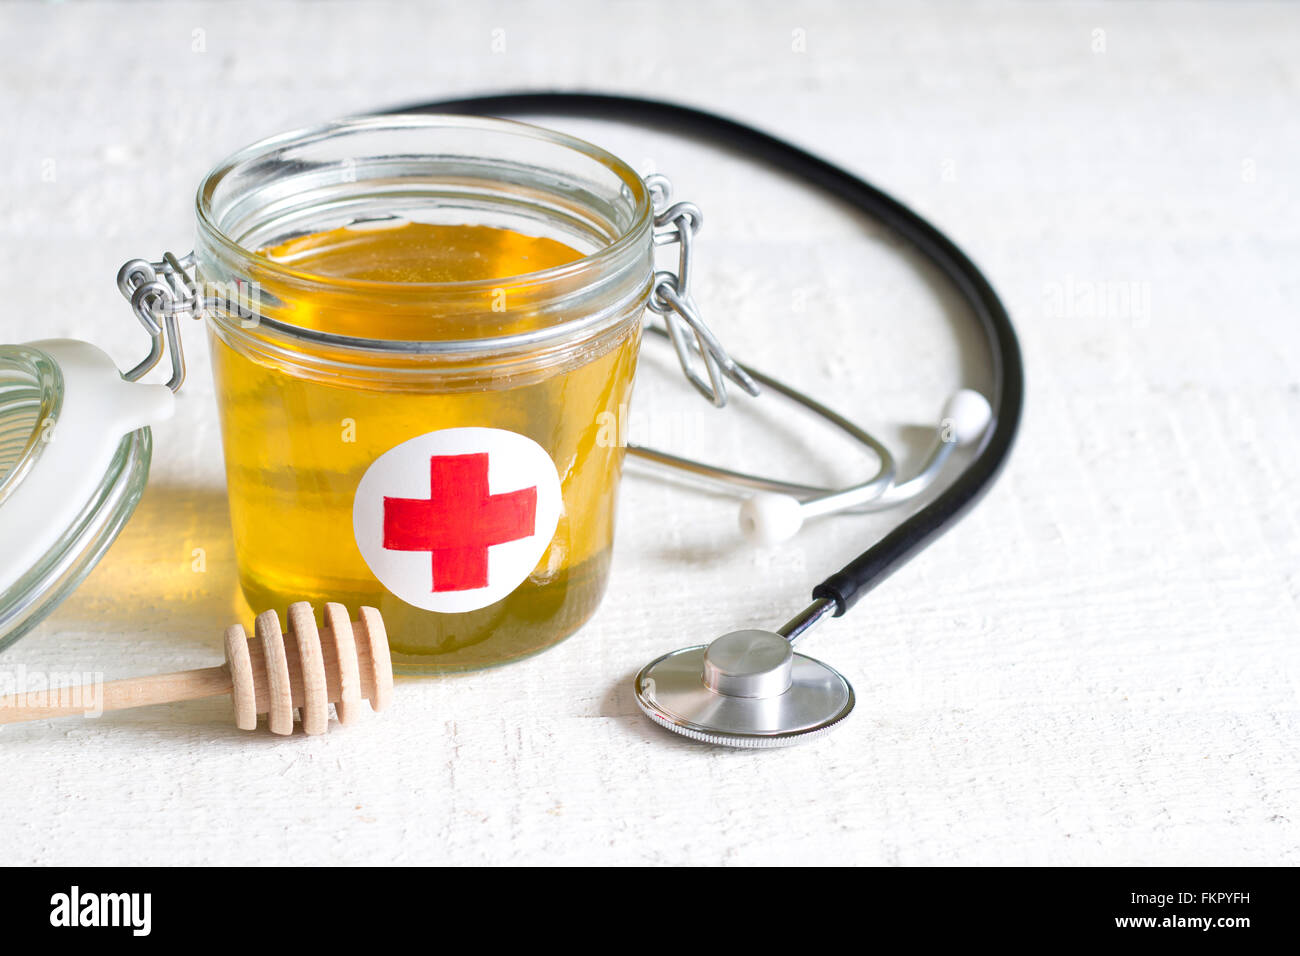 Honey is a cure abstract health lifestyle concept - Stock Image